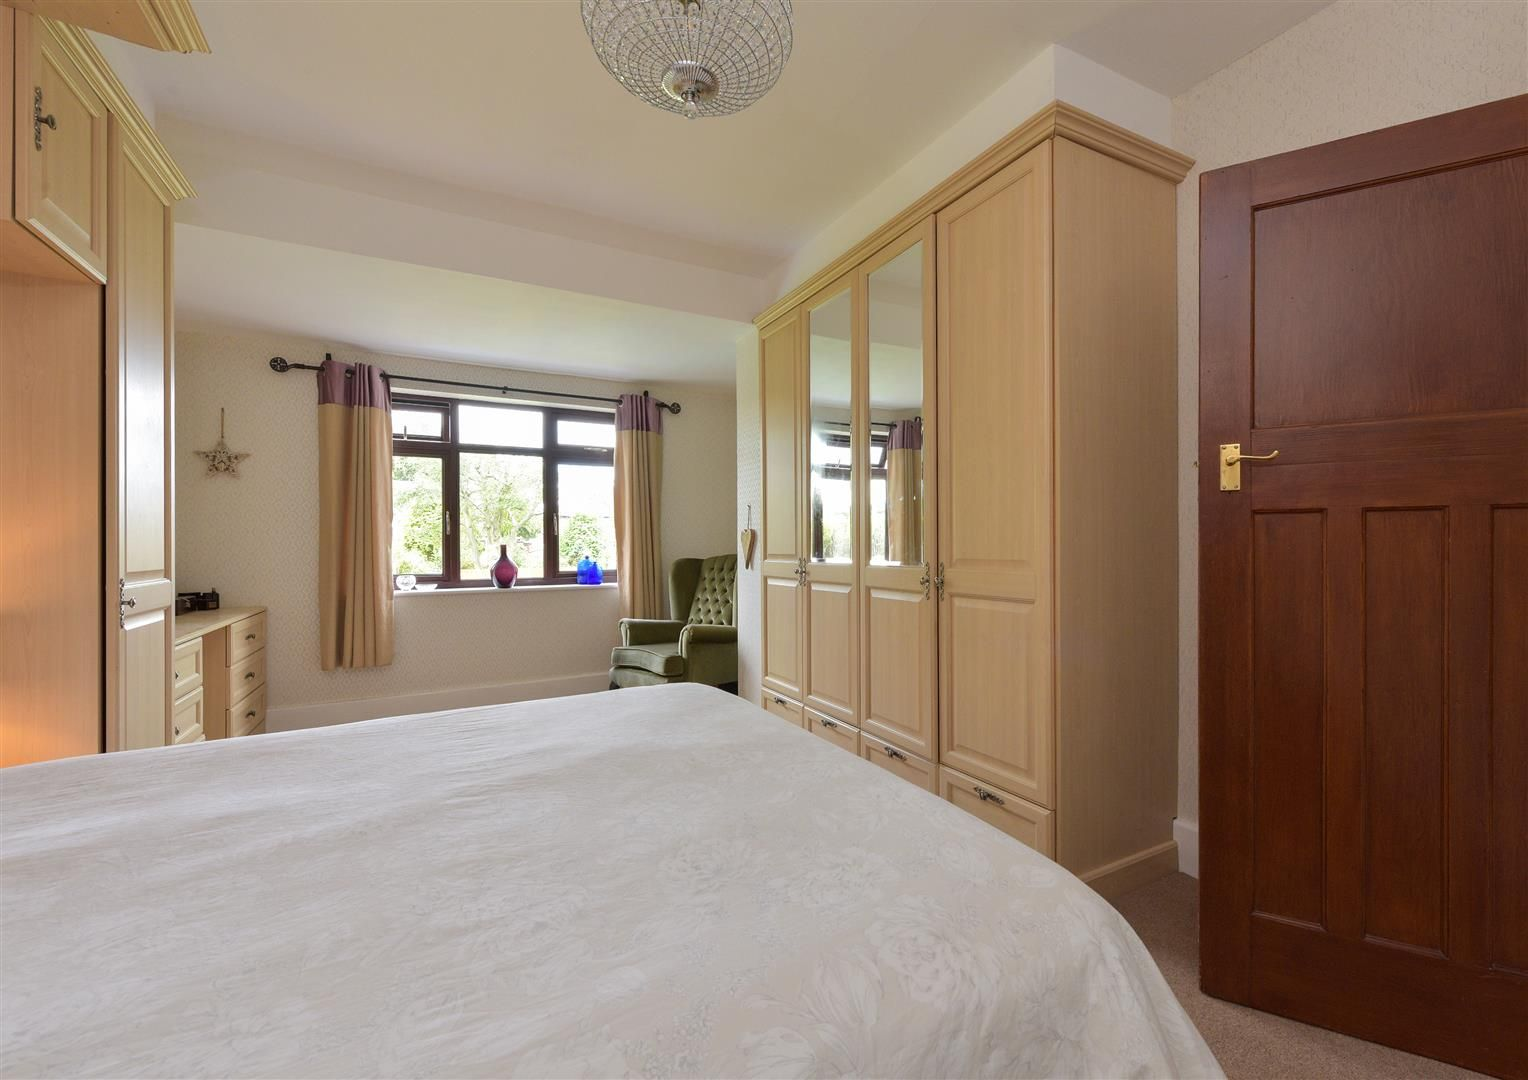 5 bed semi-detached for sale 13